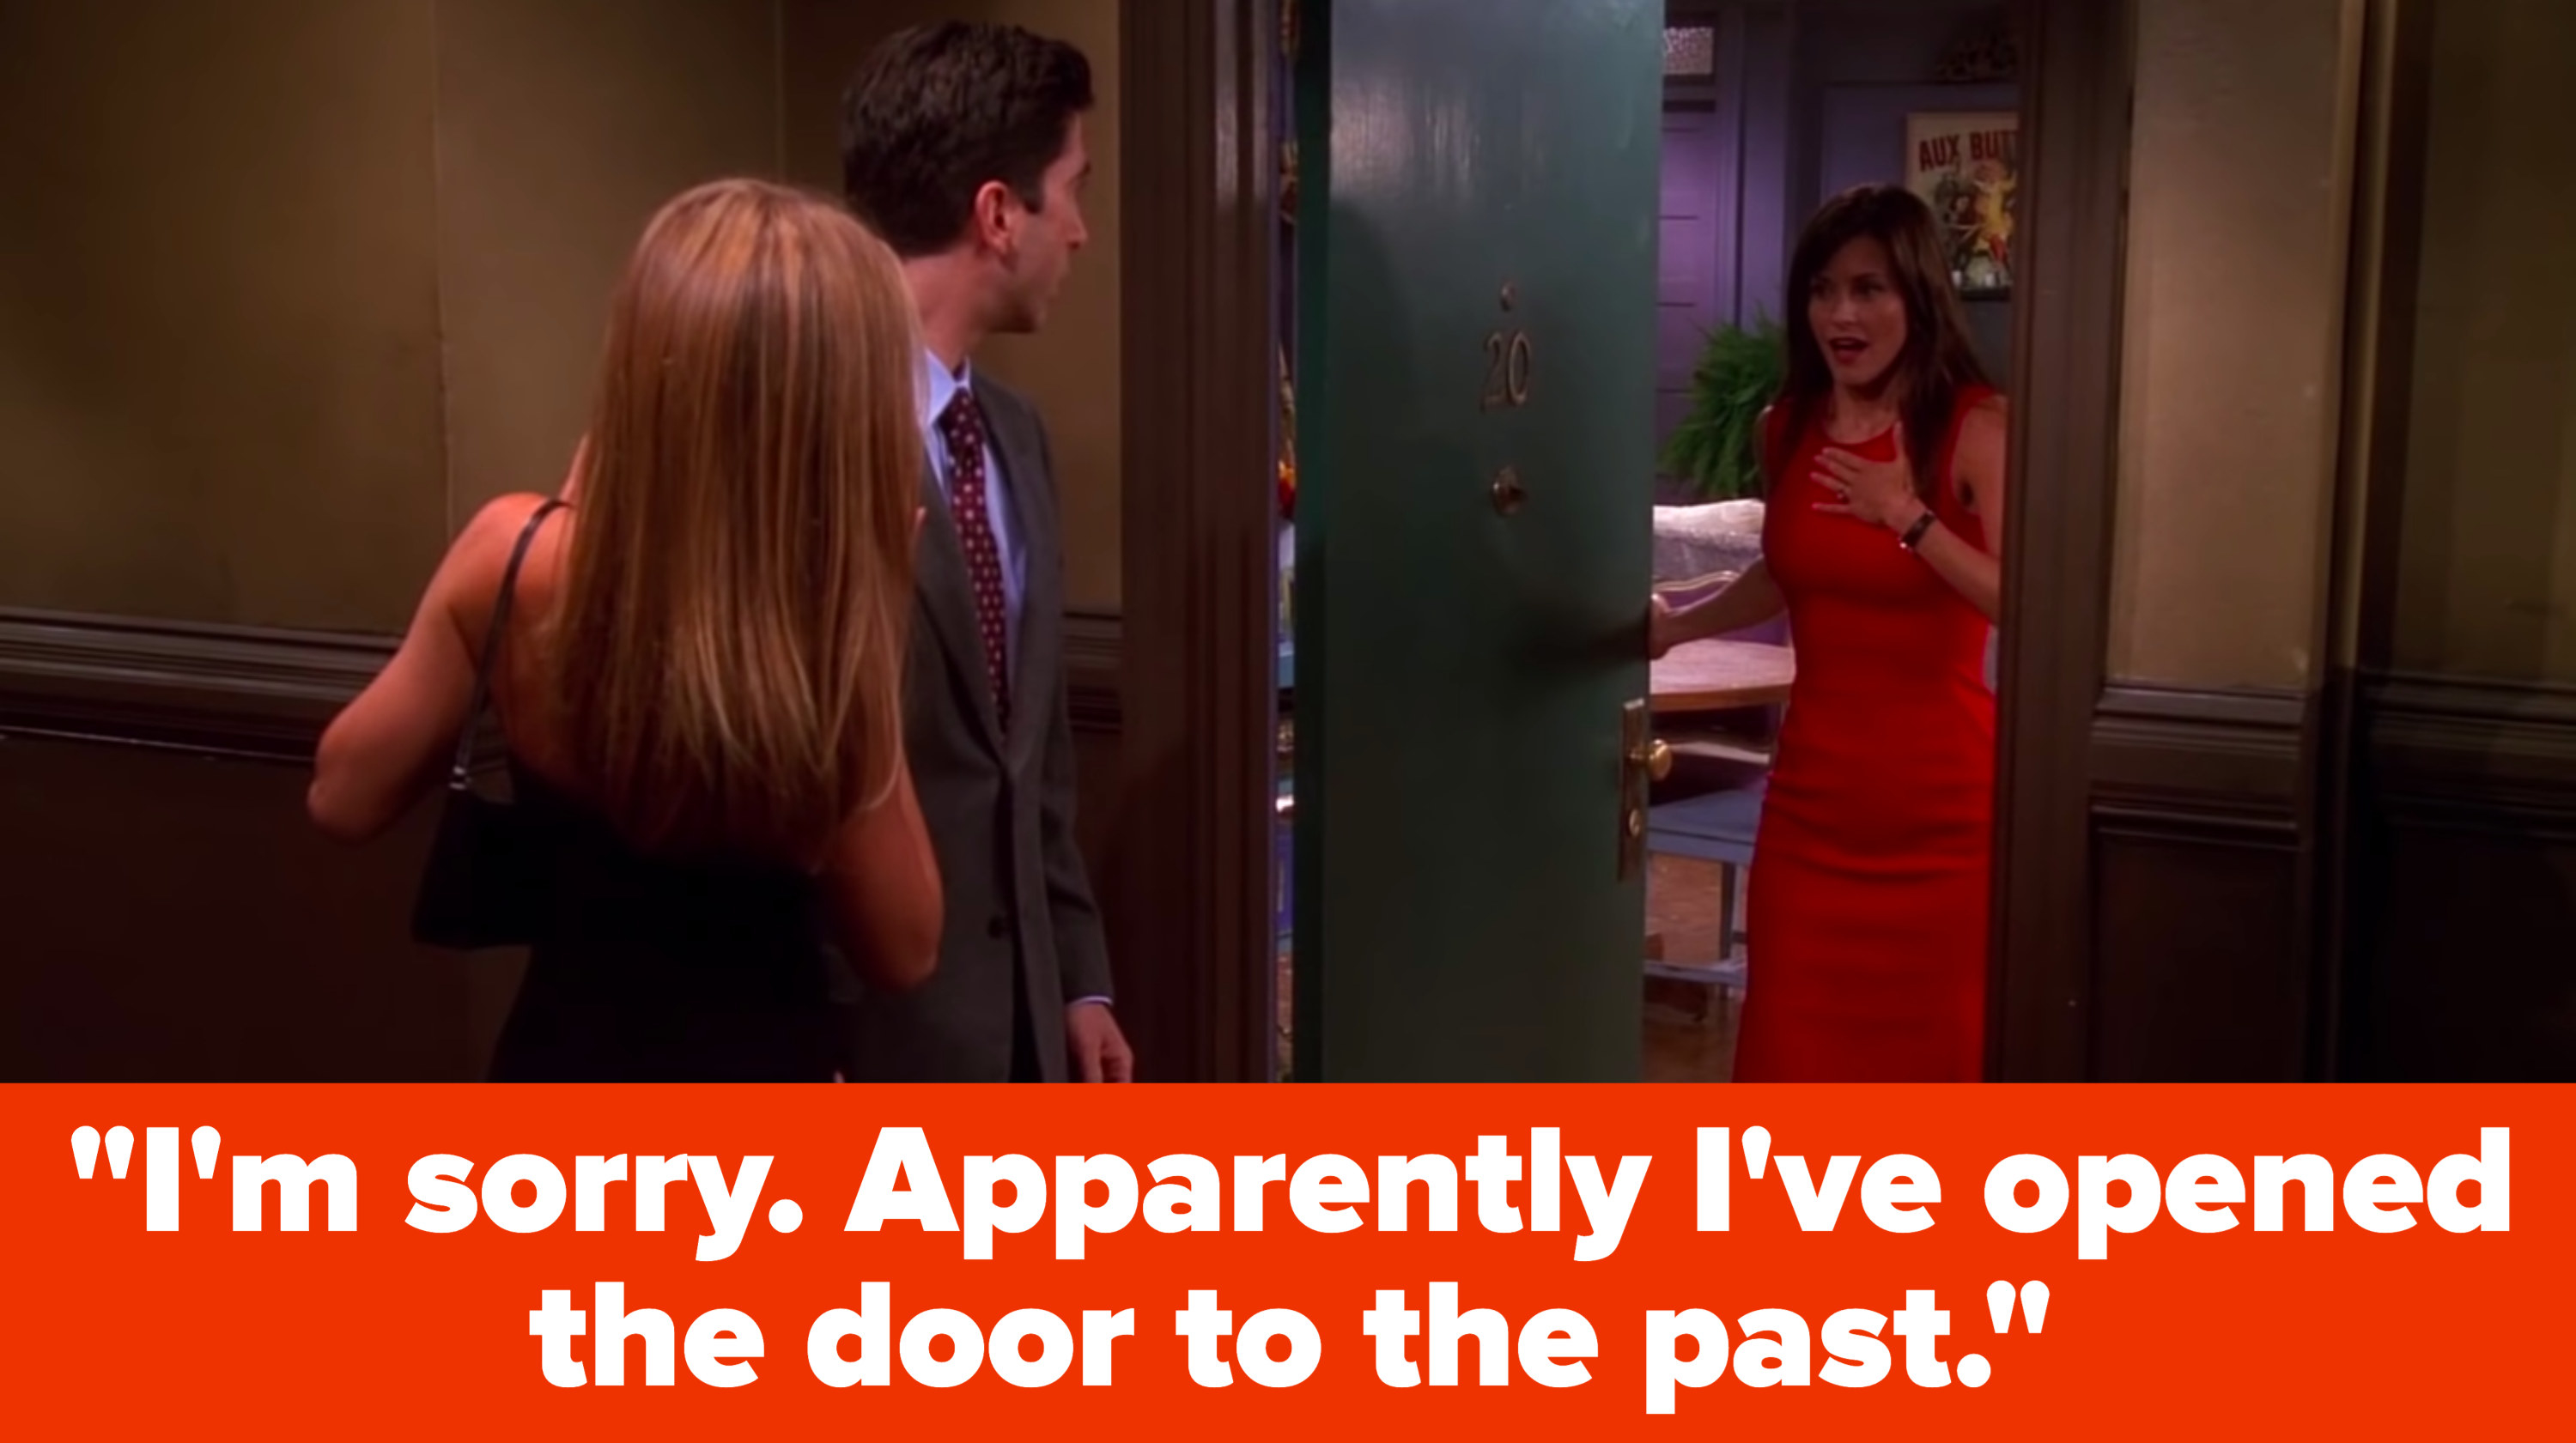 """Monica stands in her apartment doorway, saying to Ross and Rachel, """"I'm sorry, apparently I've opened the door to the past"""""""